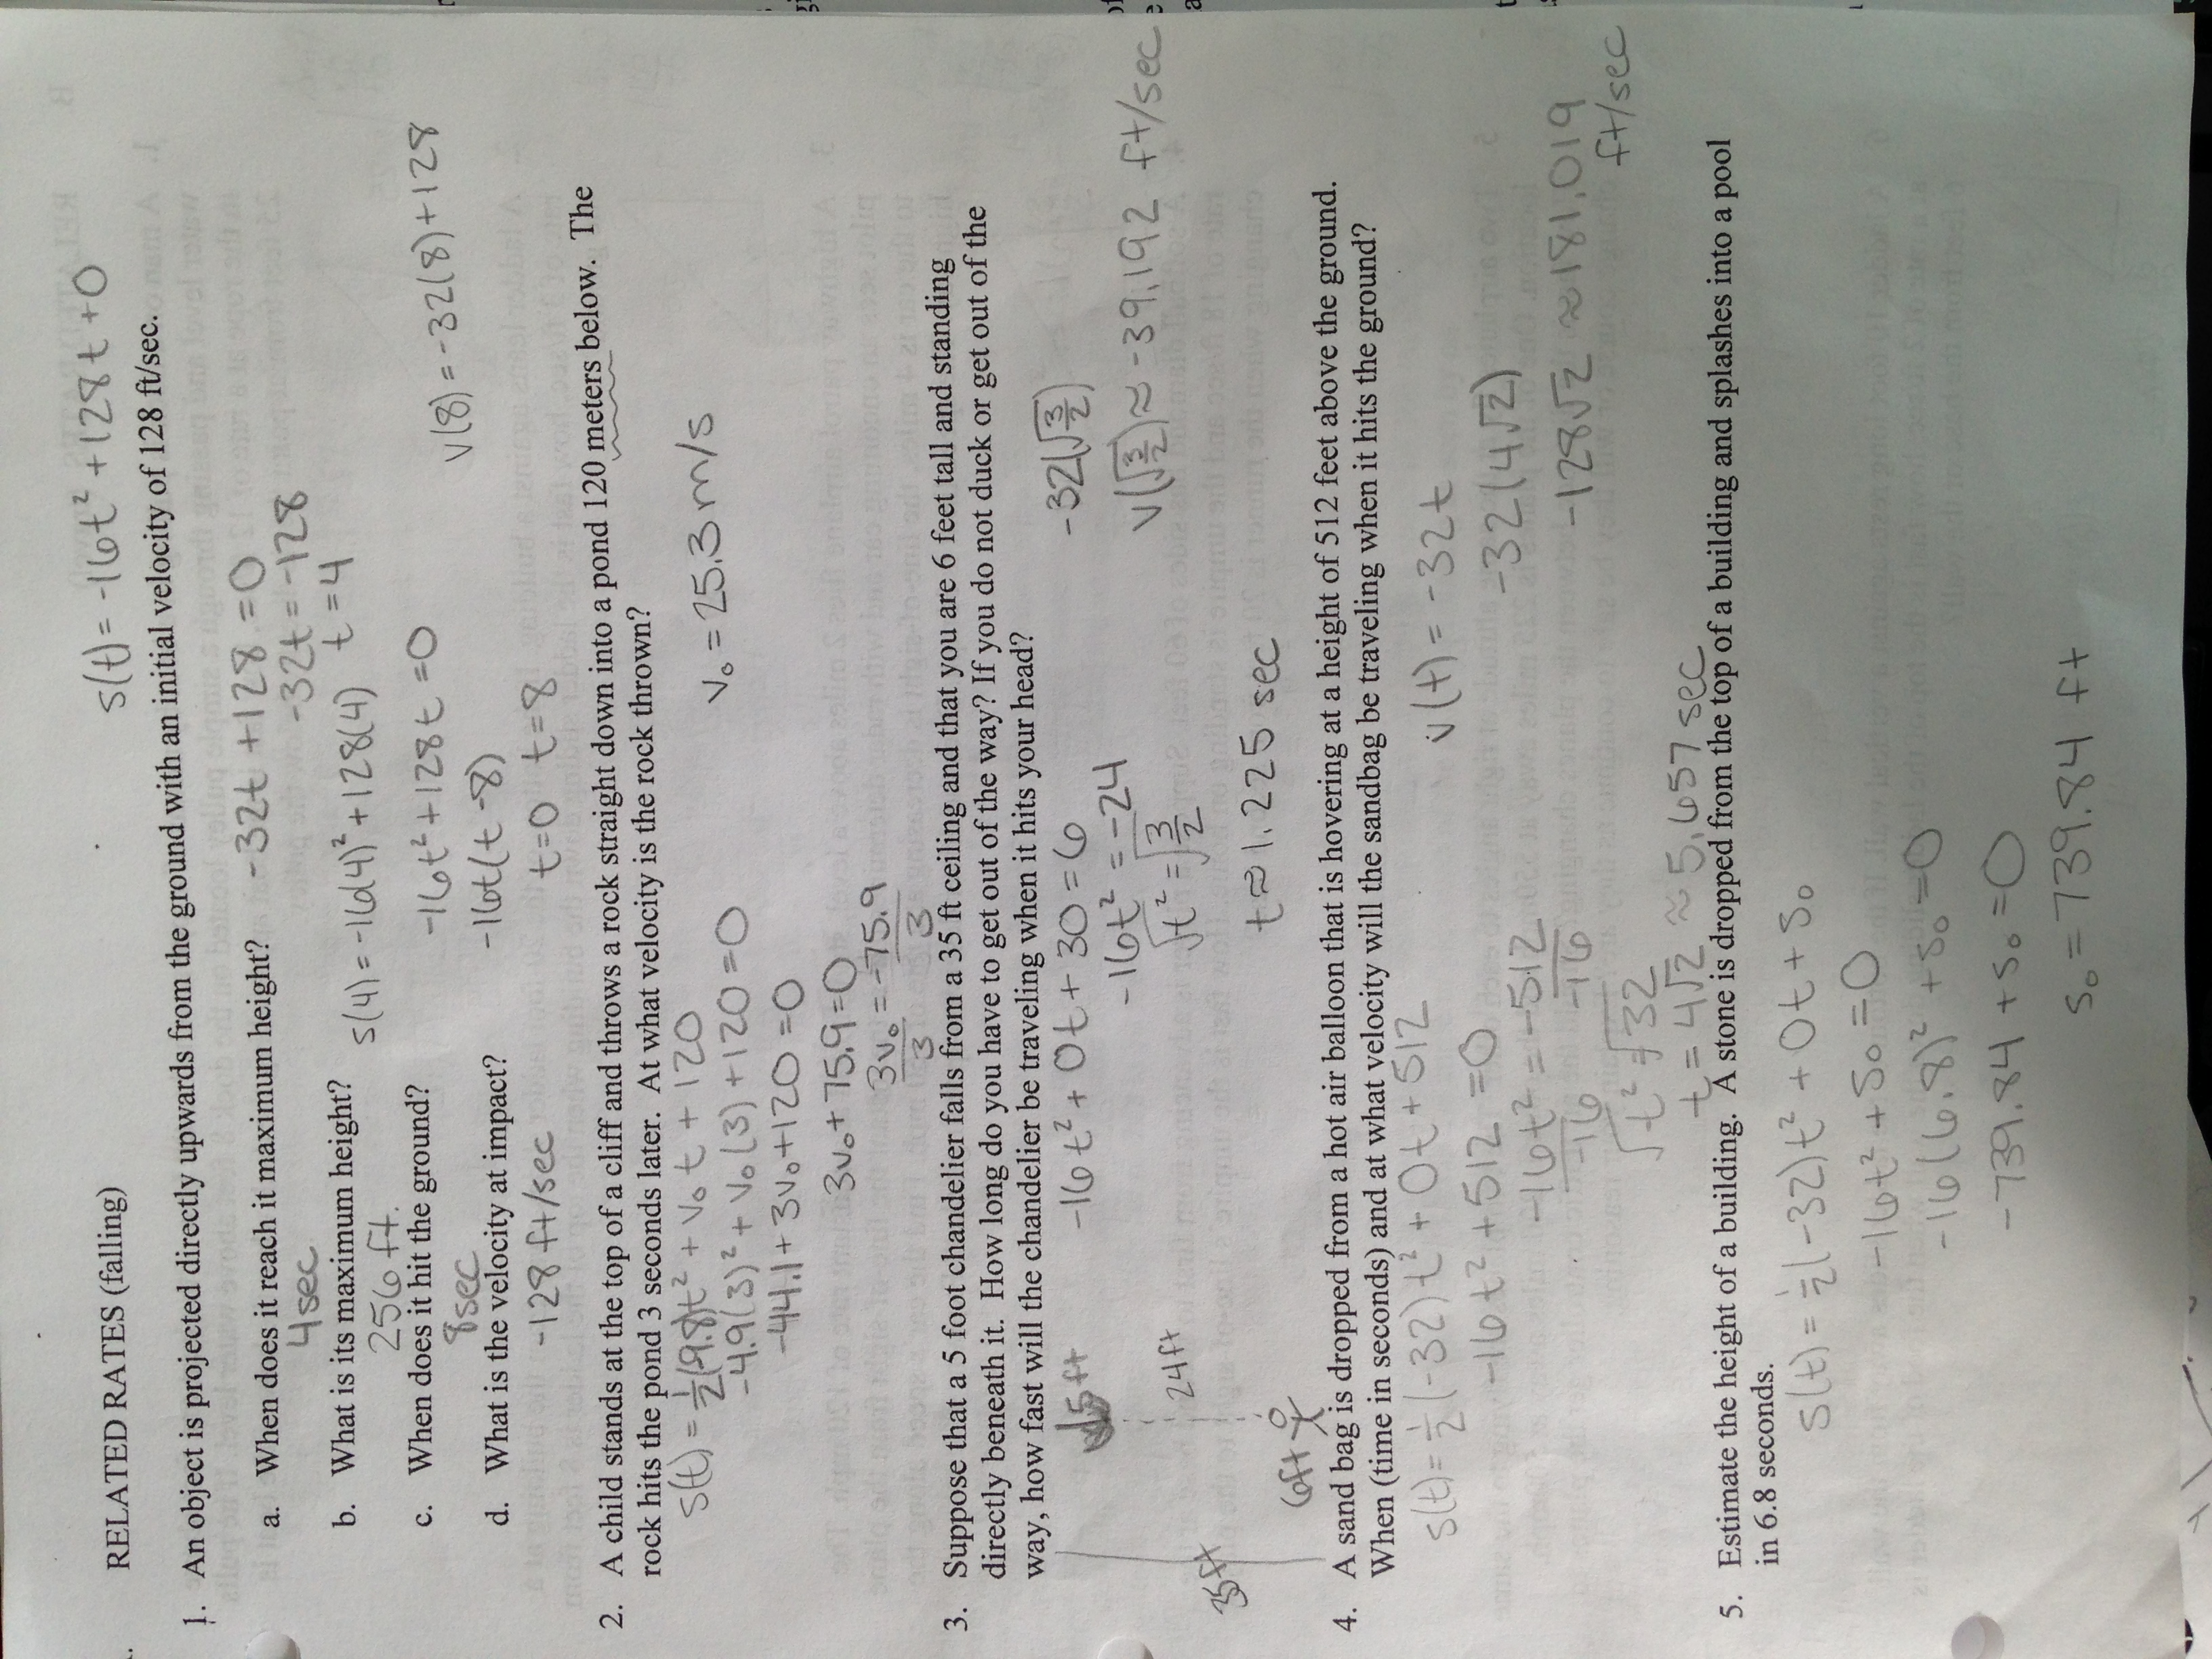 Worksheets Application Of Optimization  Work Sheet With Solution calculus leah billo worksheet a